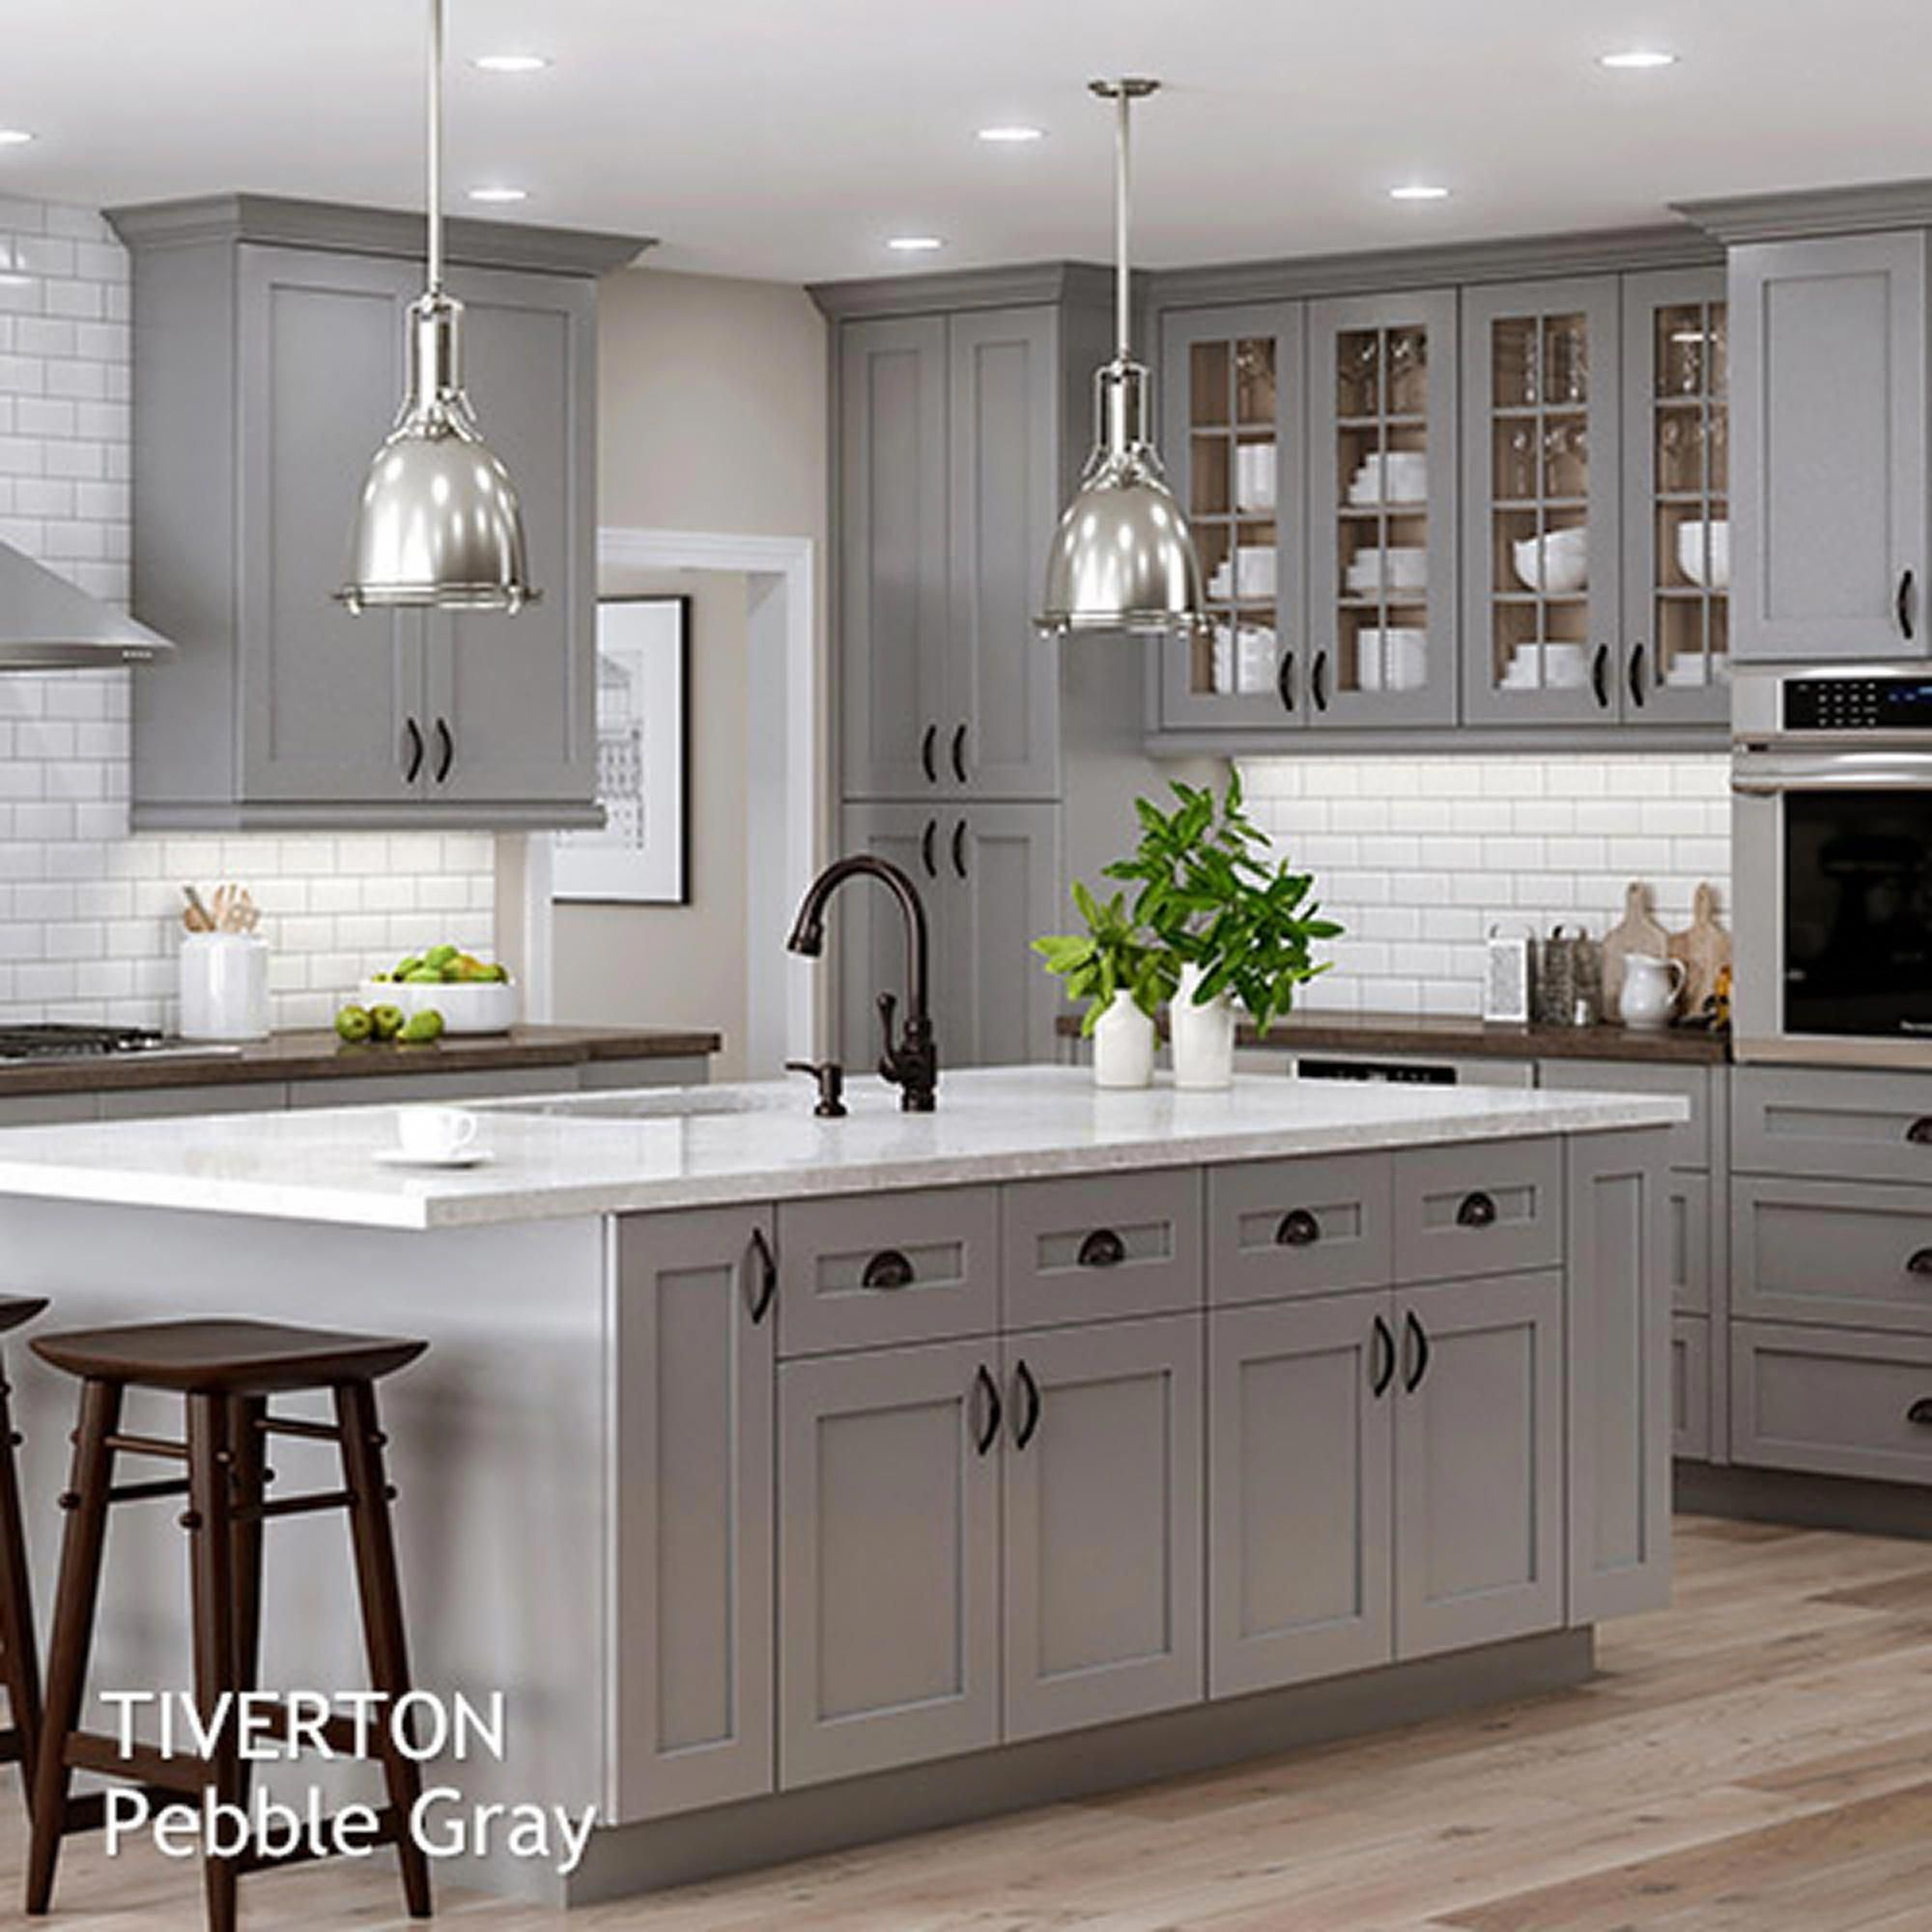 Grey Kitchen Ideas That Are Sophisticated And Stylish: Shaker Style Kitchen Cabinets